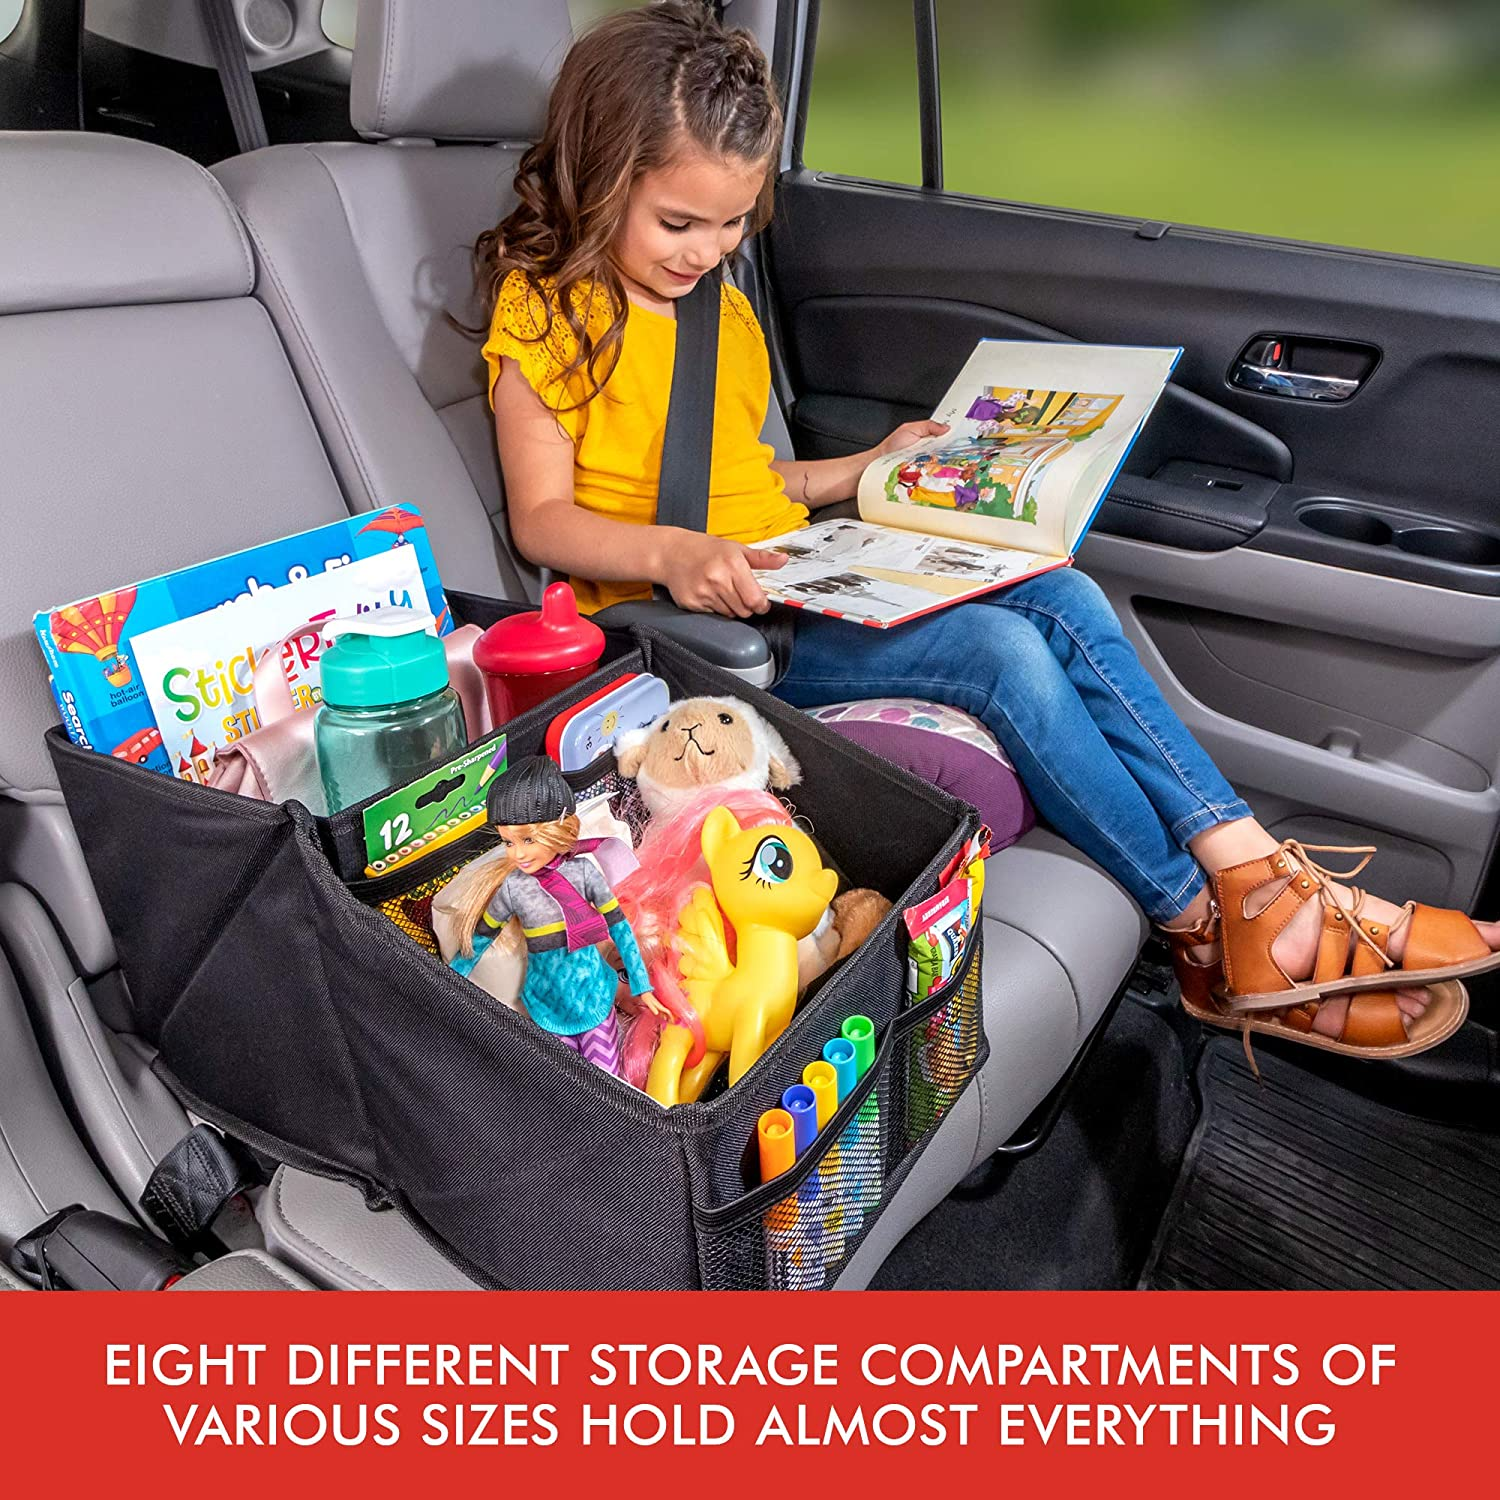 Documents Books Magazines Tissues Lusso Gear Car Seat Organizer for Front or Backseat with Black Stitching Great for Adults /& Kids Featuring 9 Storage Compartments for Toys Maps Games /& More